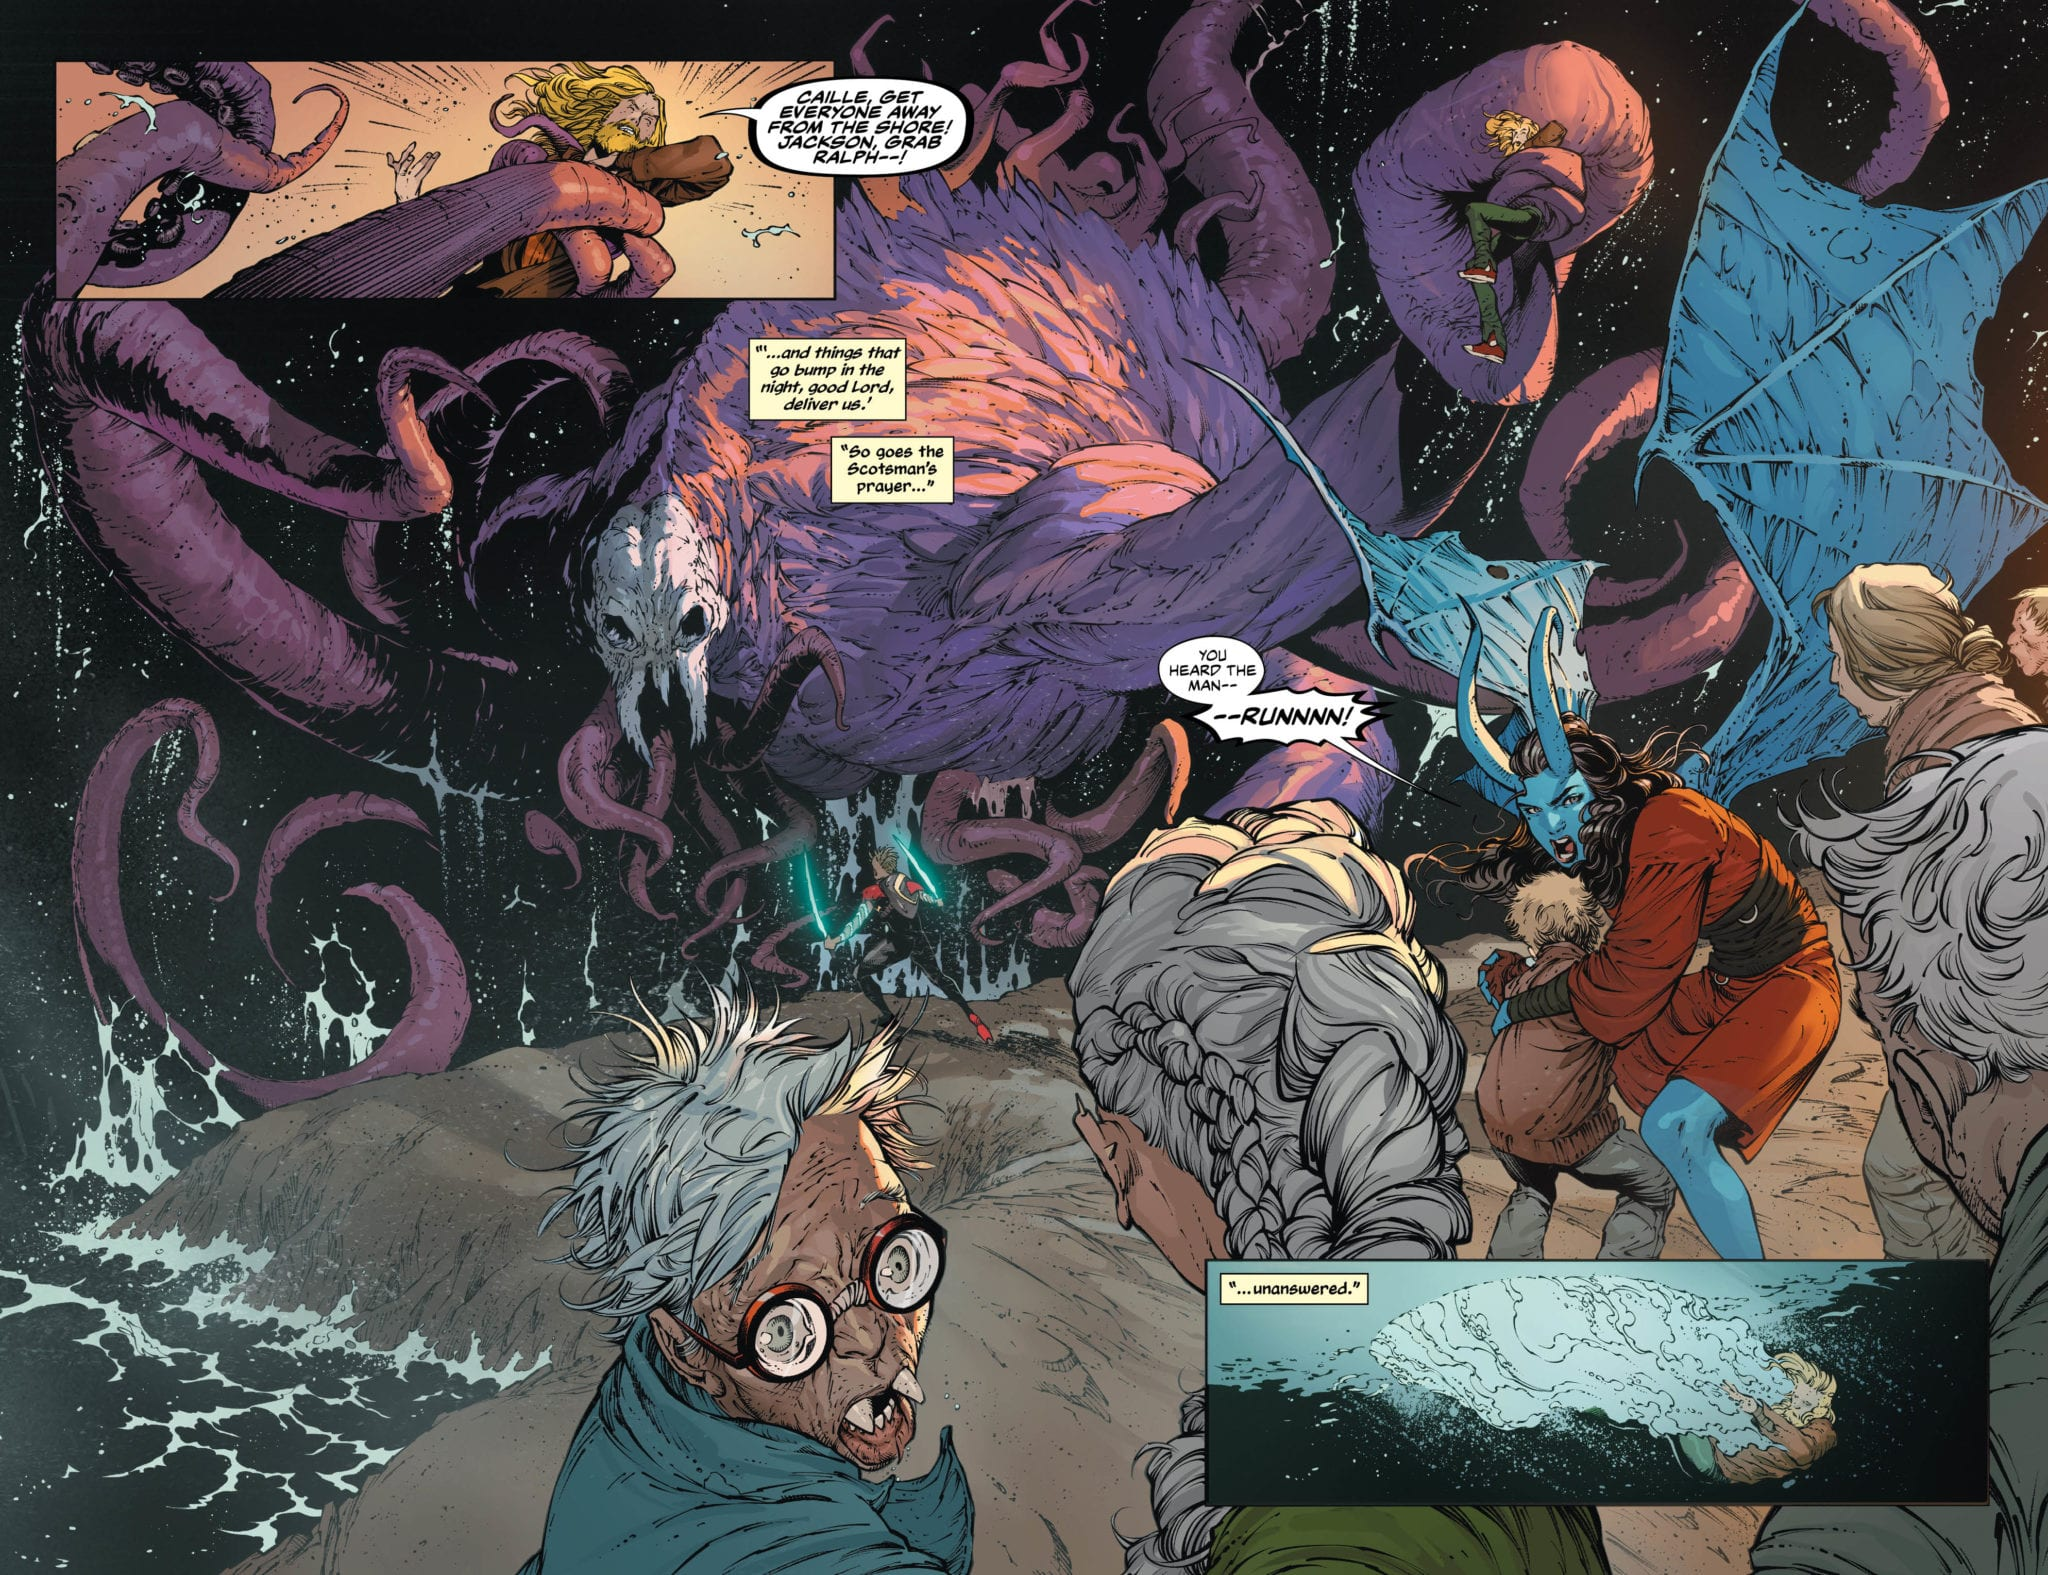 the monster attacks the Old Gods on Amnesty Island